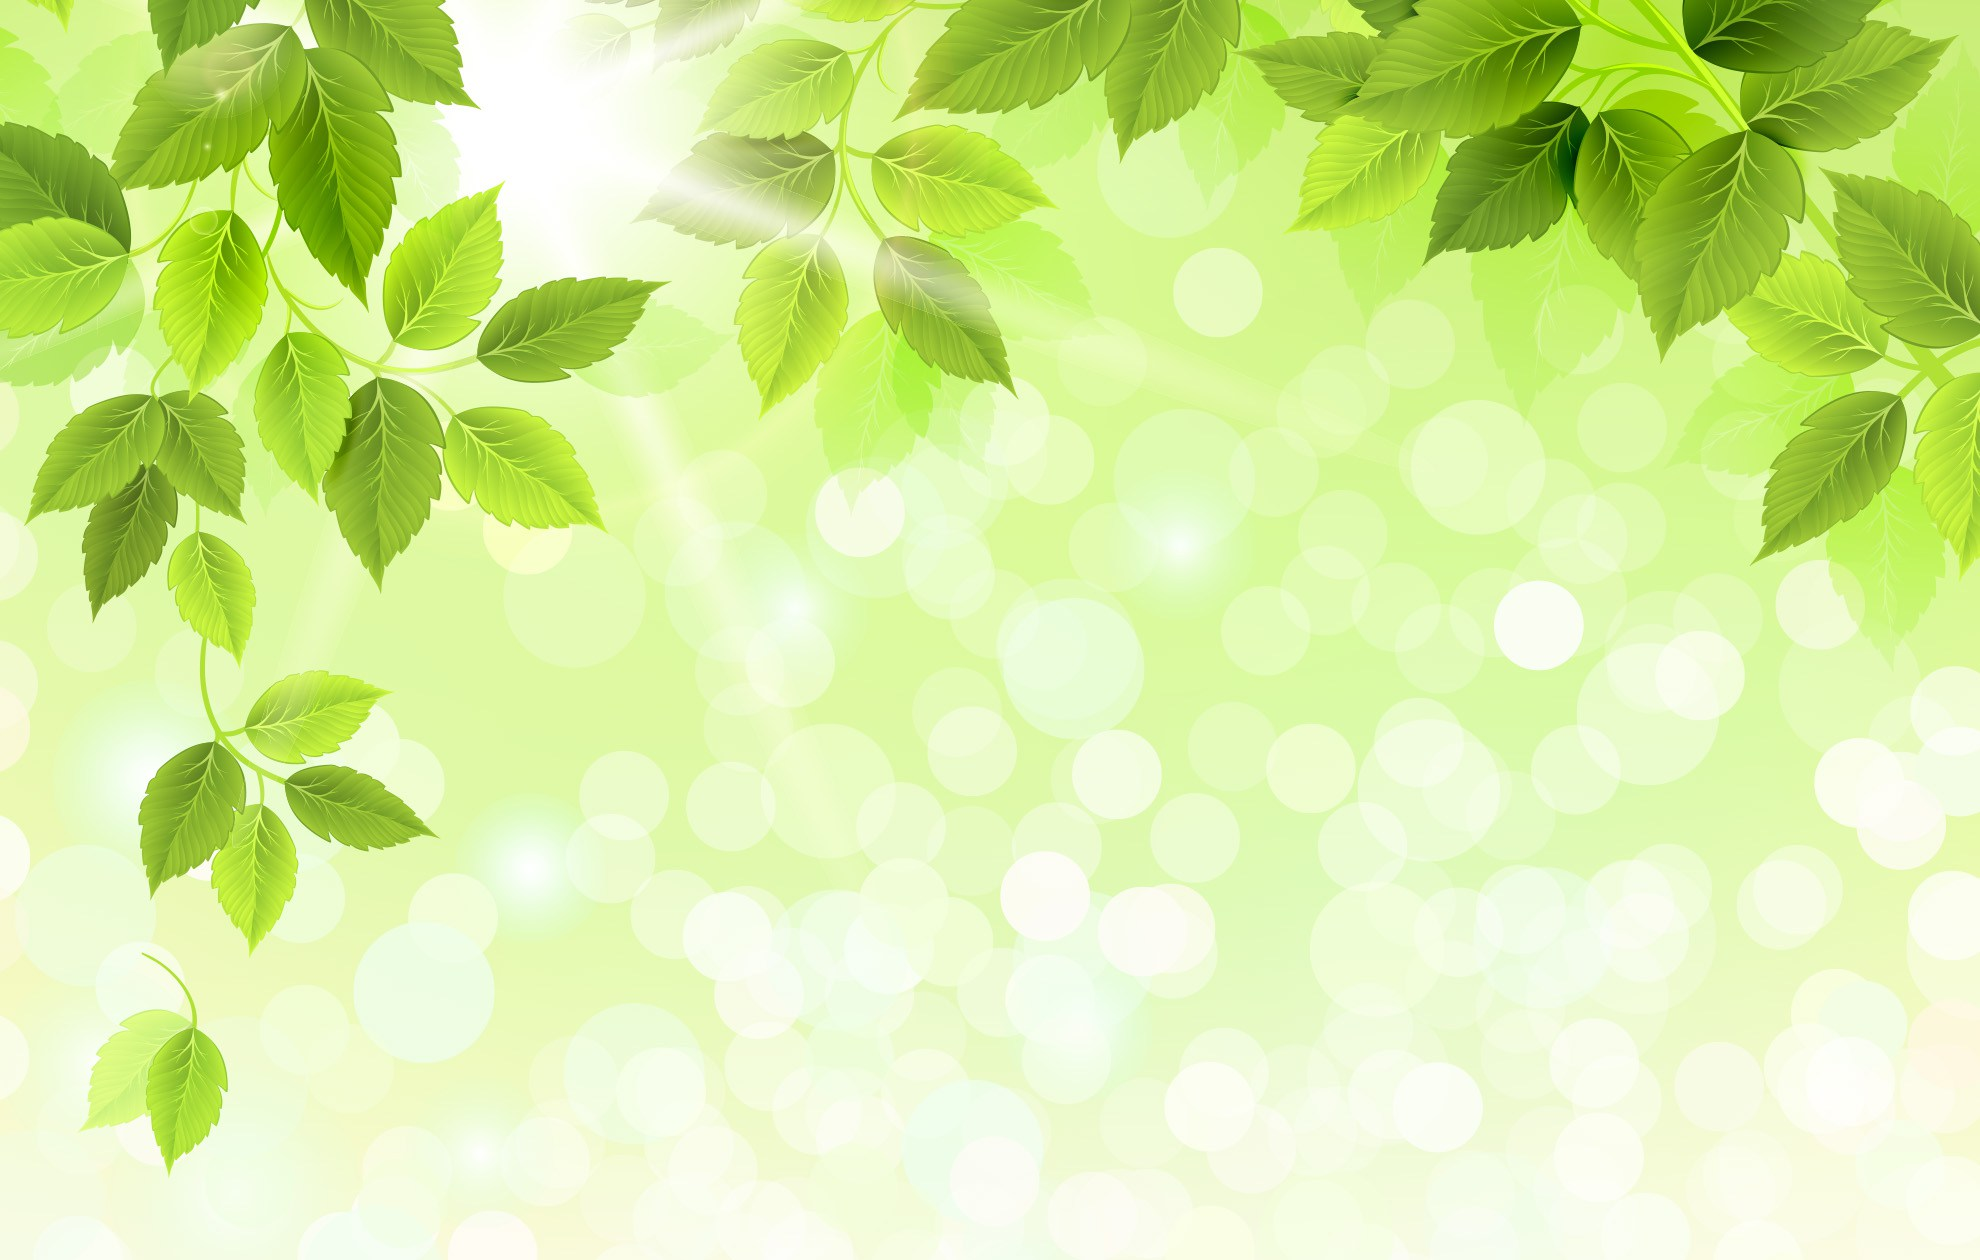 Free Fall Wallpaper Pics Free Photo Green Leaves Background Green Light Leaf